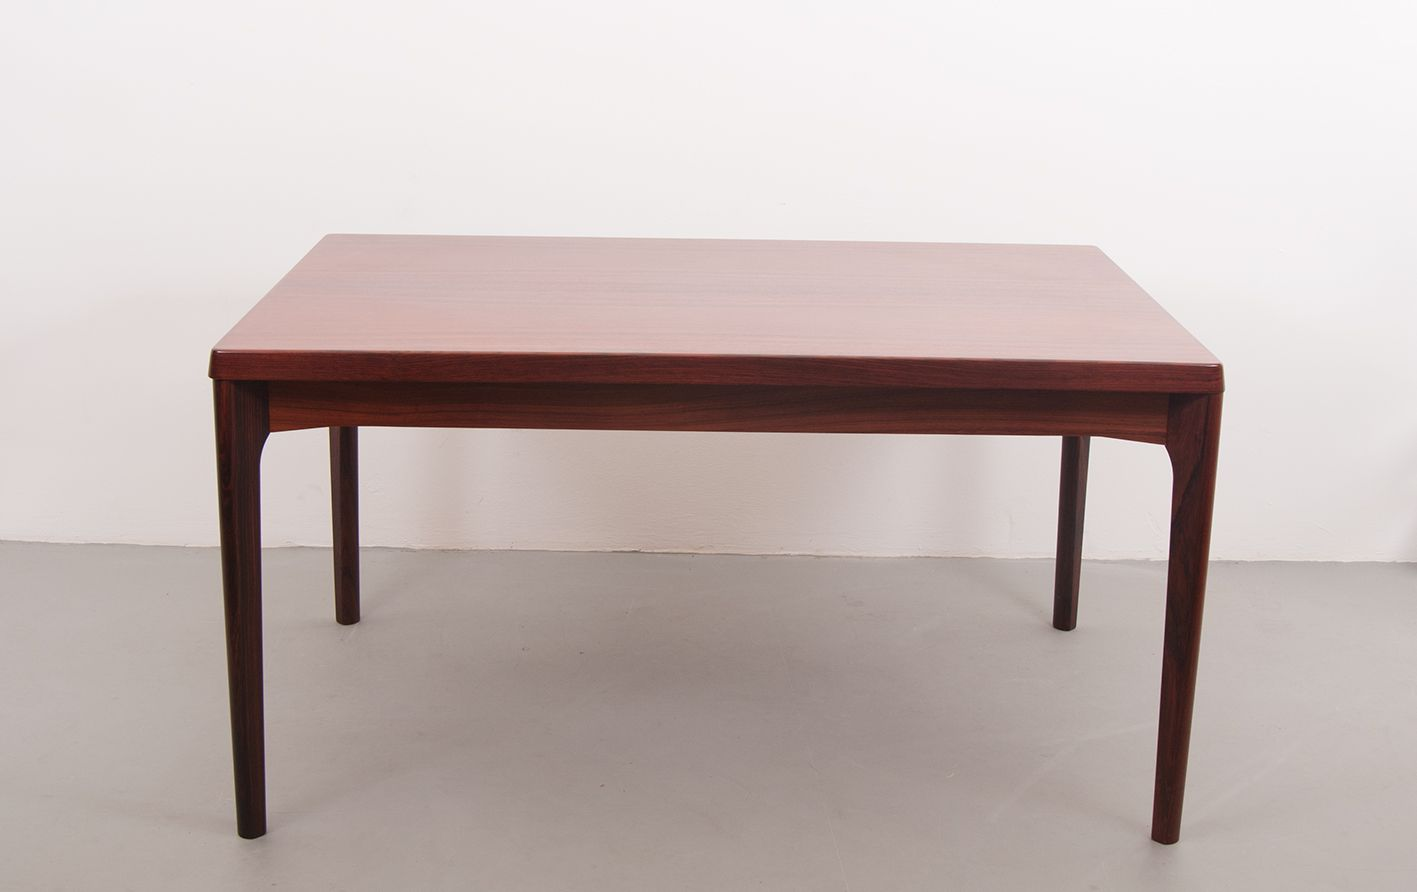 Extensible dining table by henning kj rnulf for vejle denmark for sale at pamono - Table chene extensible ...